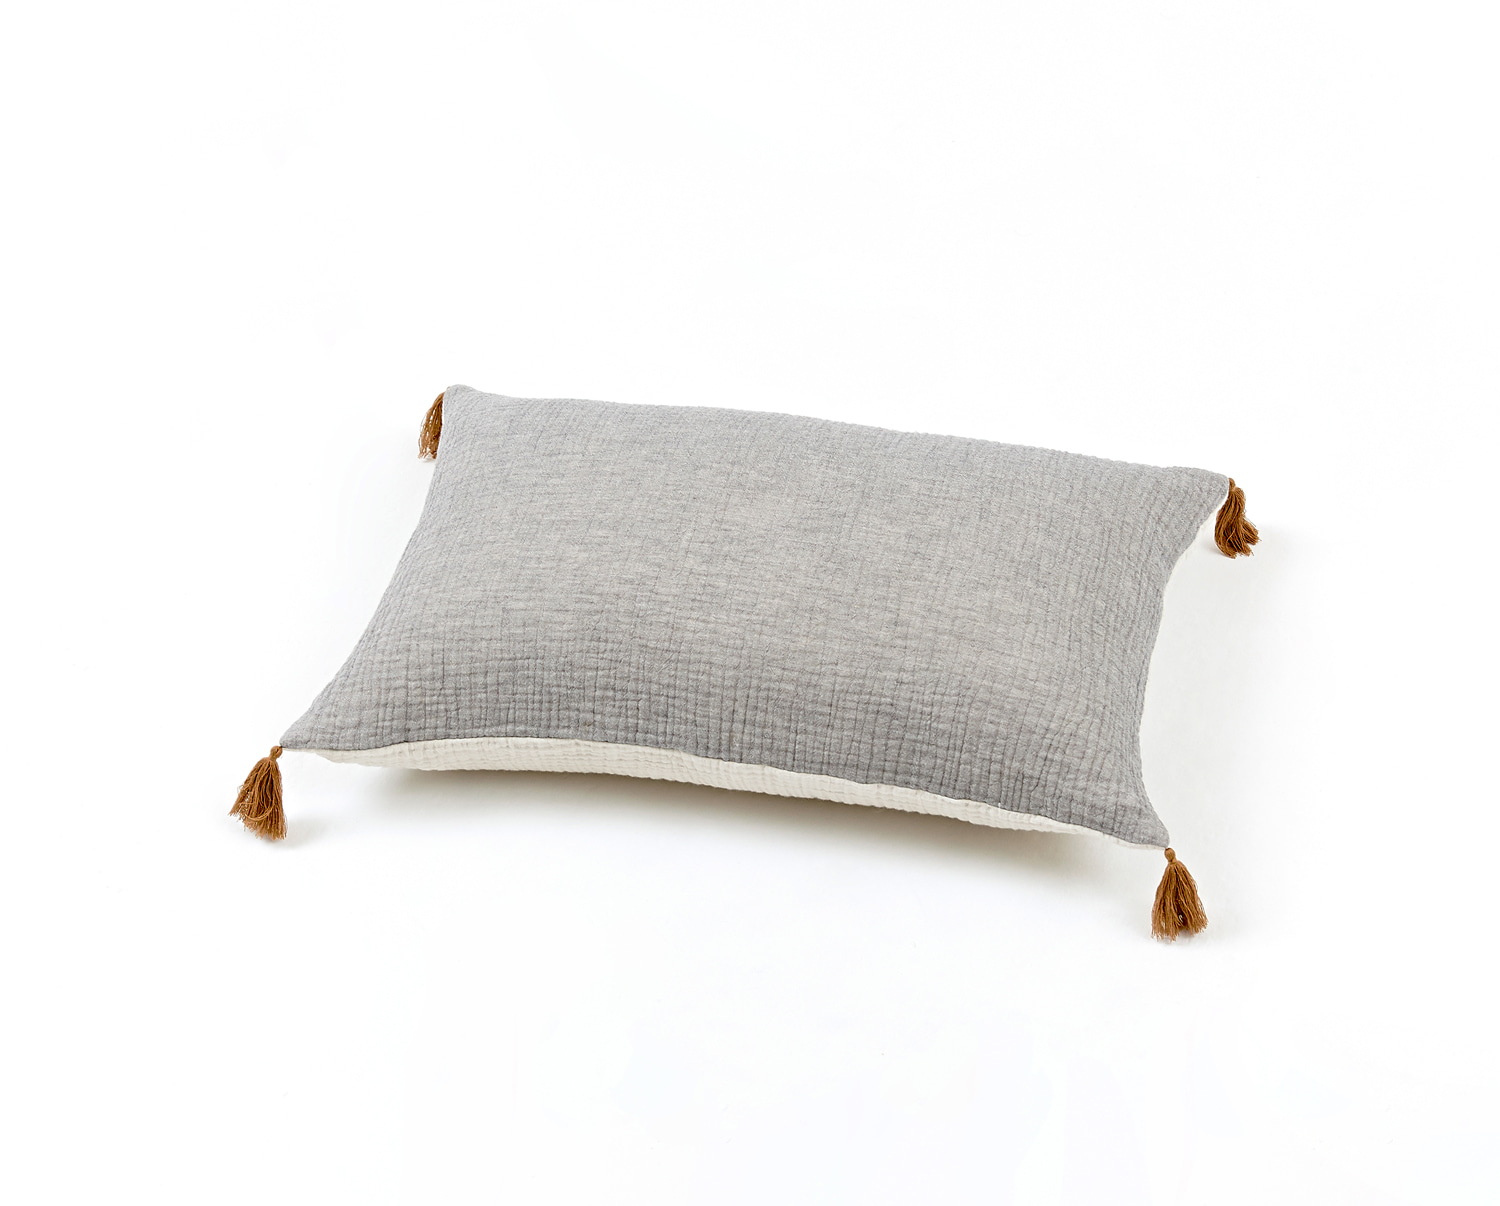 BICOLOR GAUZE CUSHION GRAY / IVORY